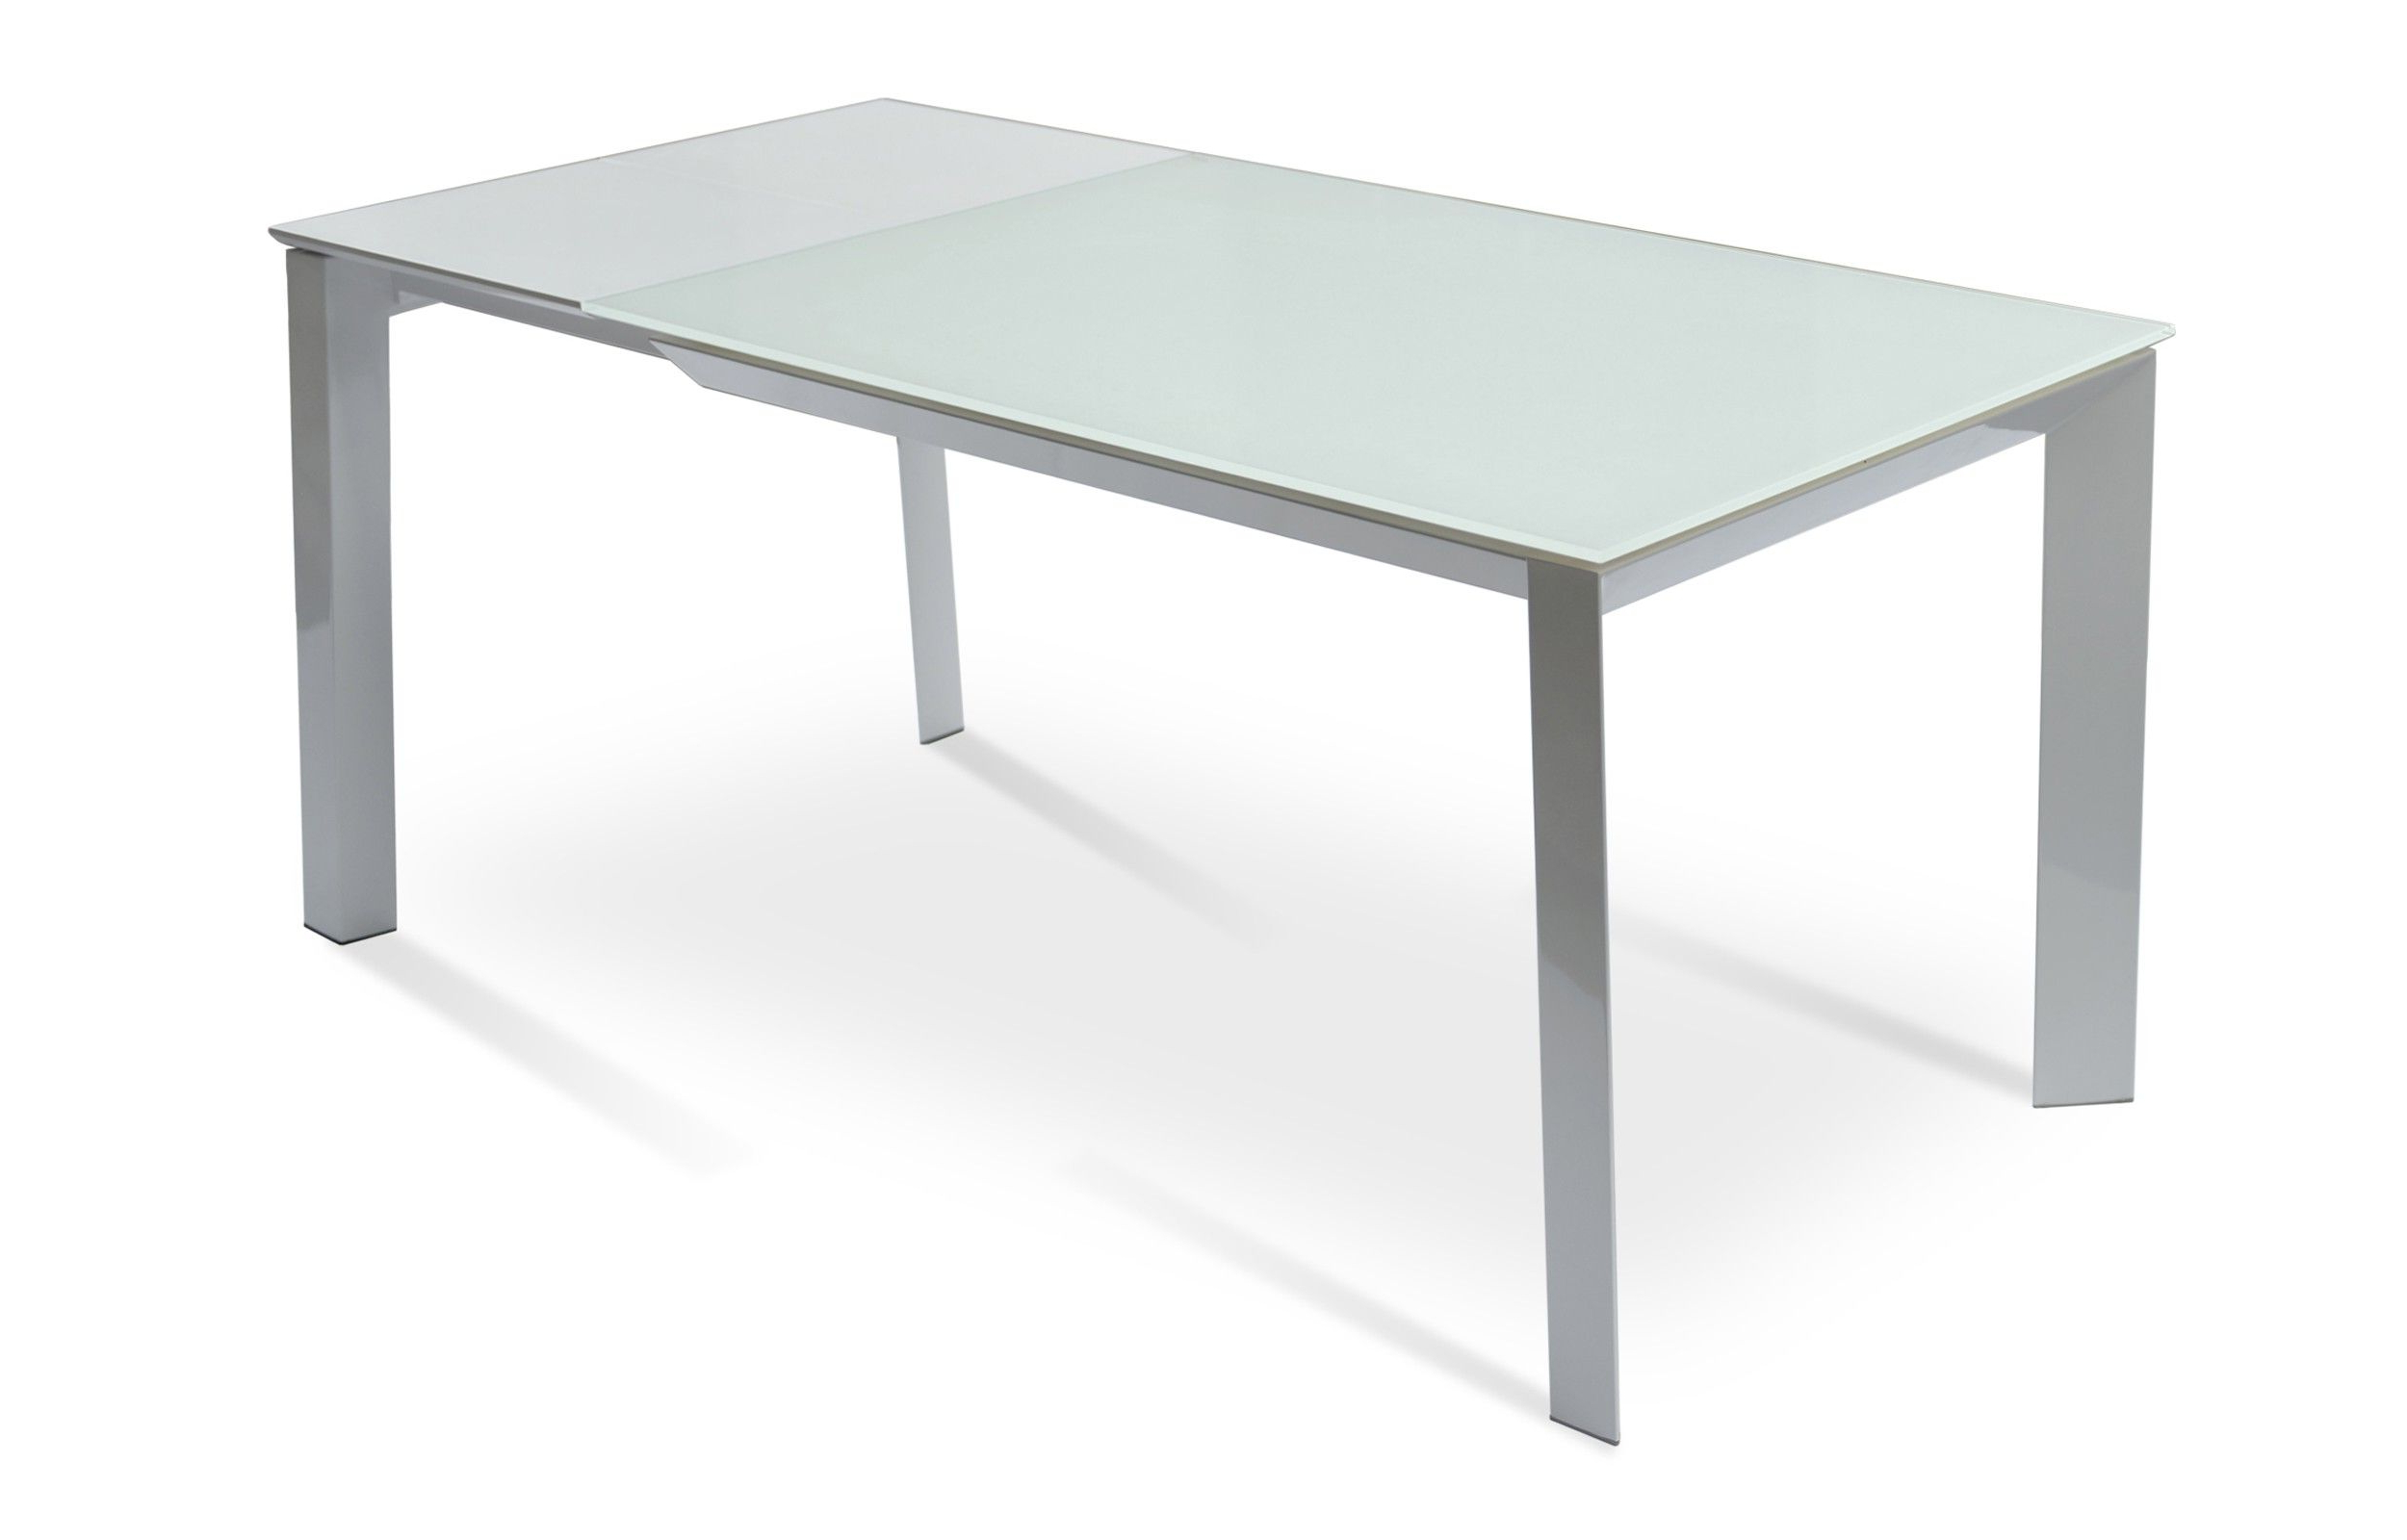 Dining Table, Glass With Latest Modern Glass Top Extension Dining Tables In Stainless (View 9 of 30)